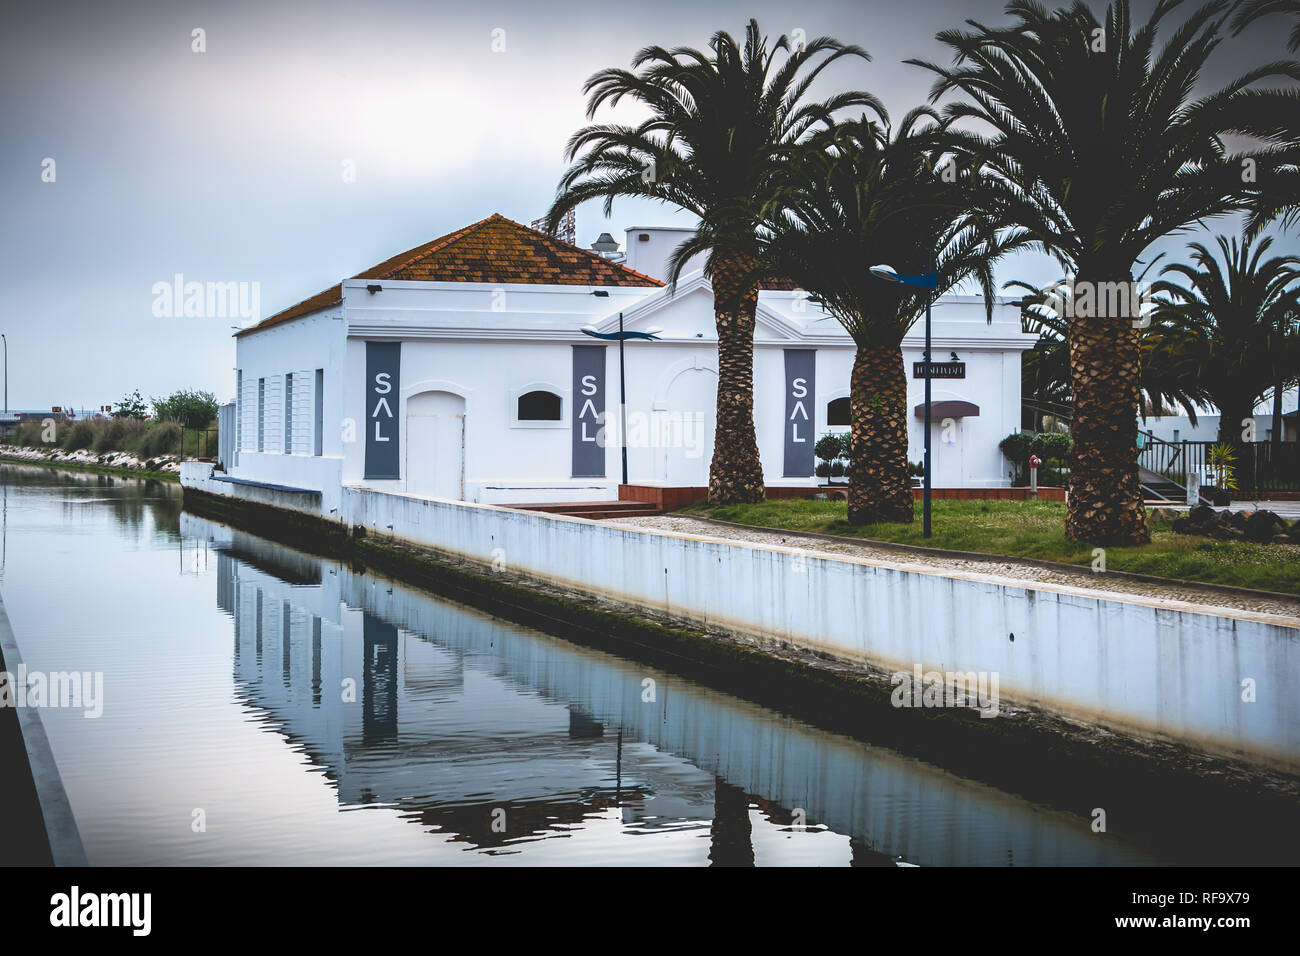 Aveiro, Portugal - May 7, 2018: beautiful architecture detail modern house in the city center near a water channel on a spring day - Stock Image